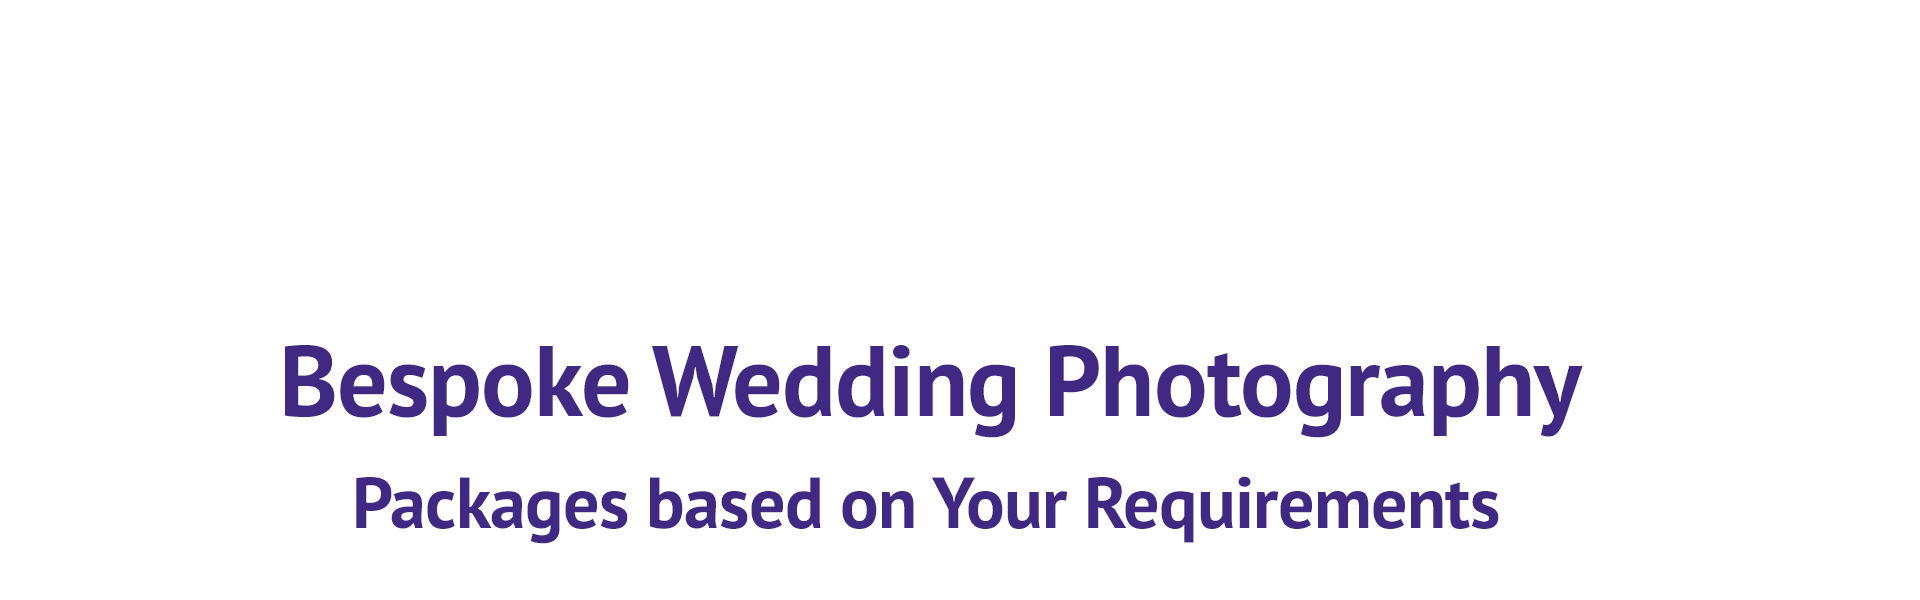 Bespoke Wedding Photography Packages based on Your Requirements